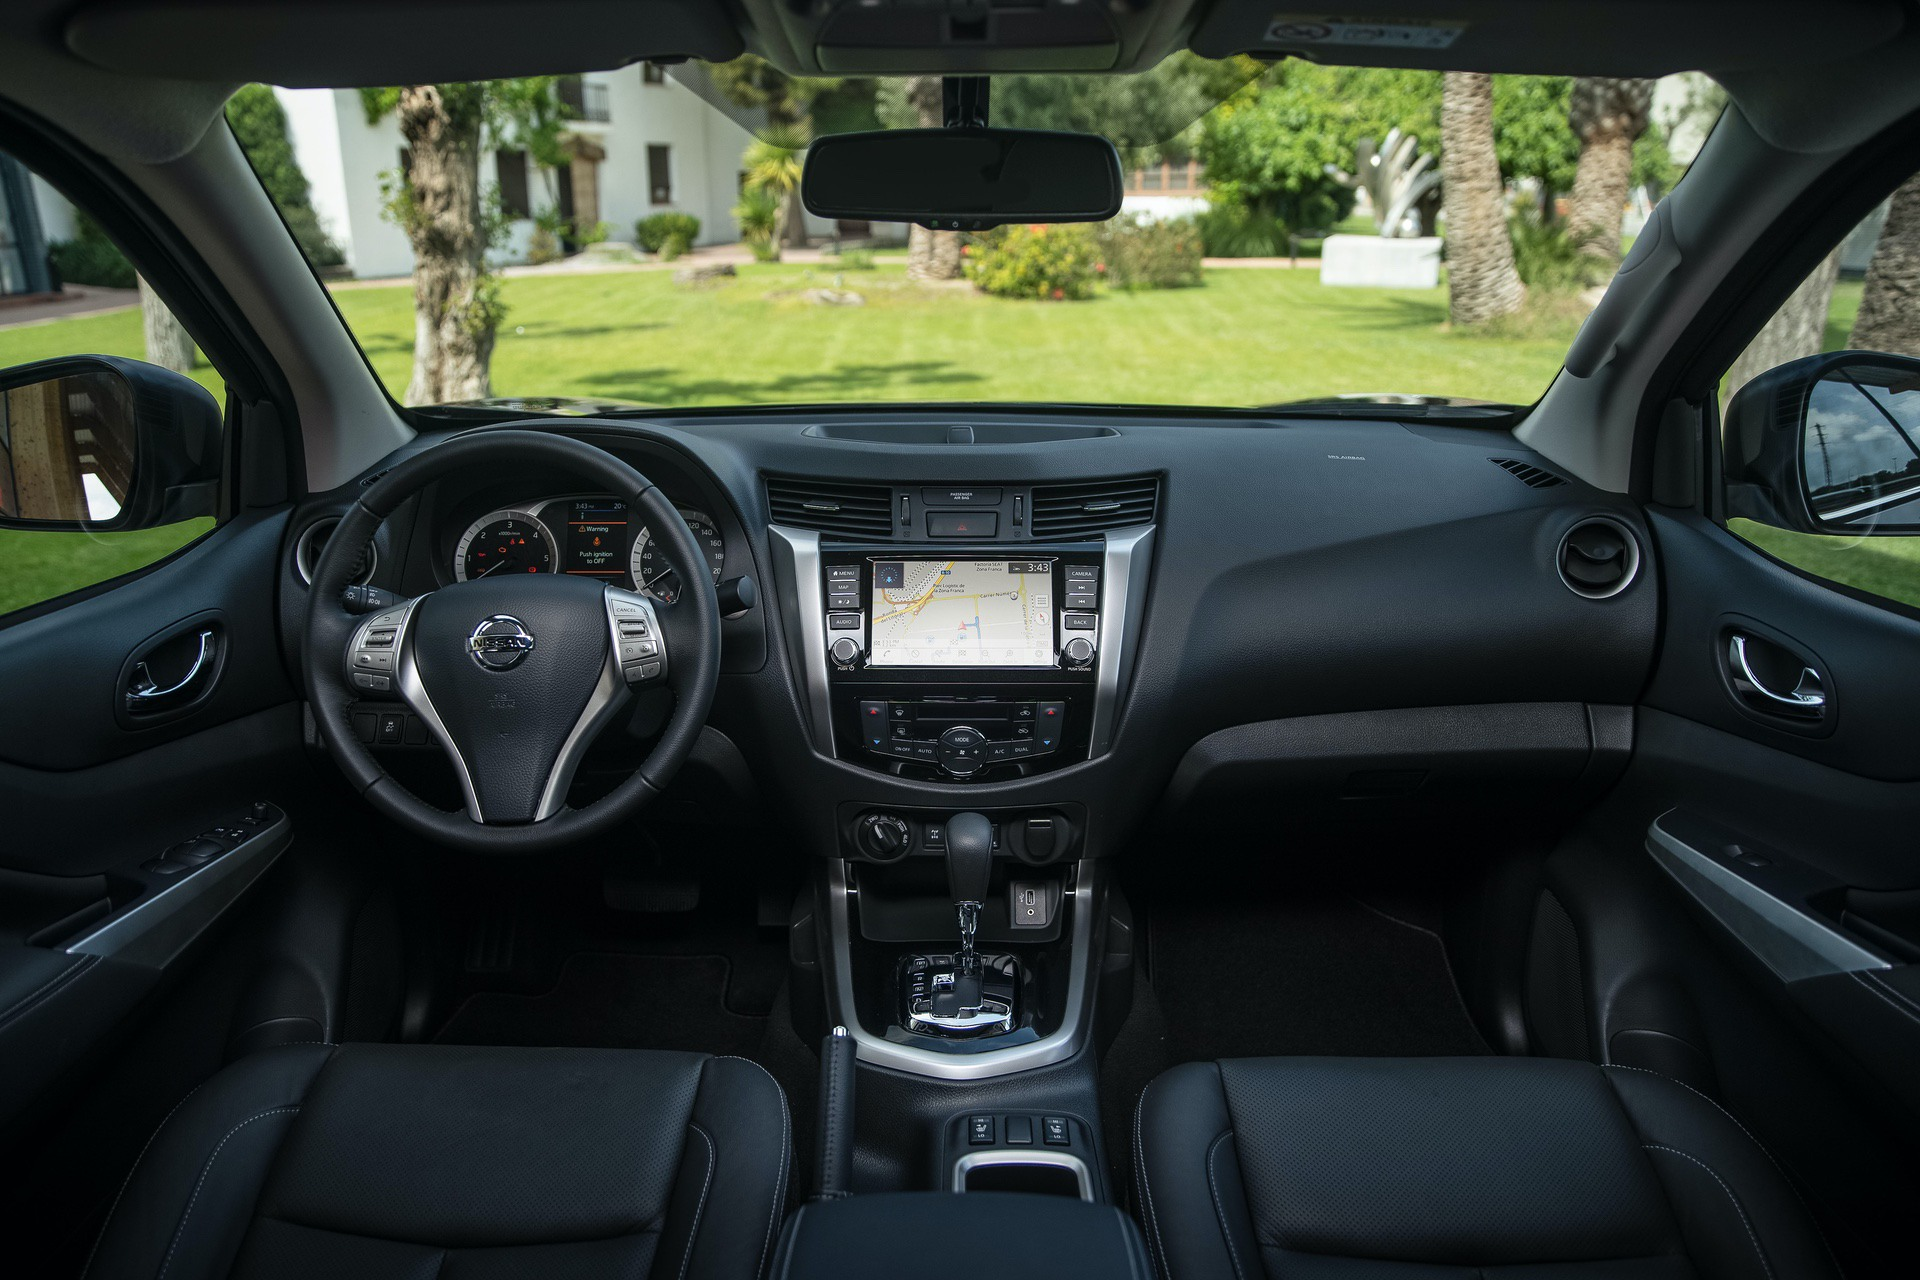 Nissan-Navara-Double-Cab-Blue-Interior-1